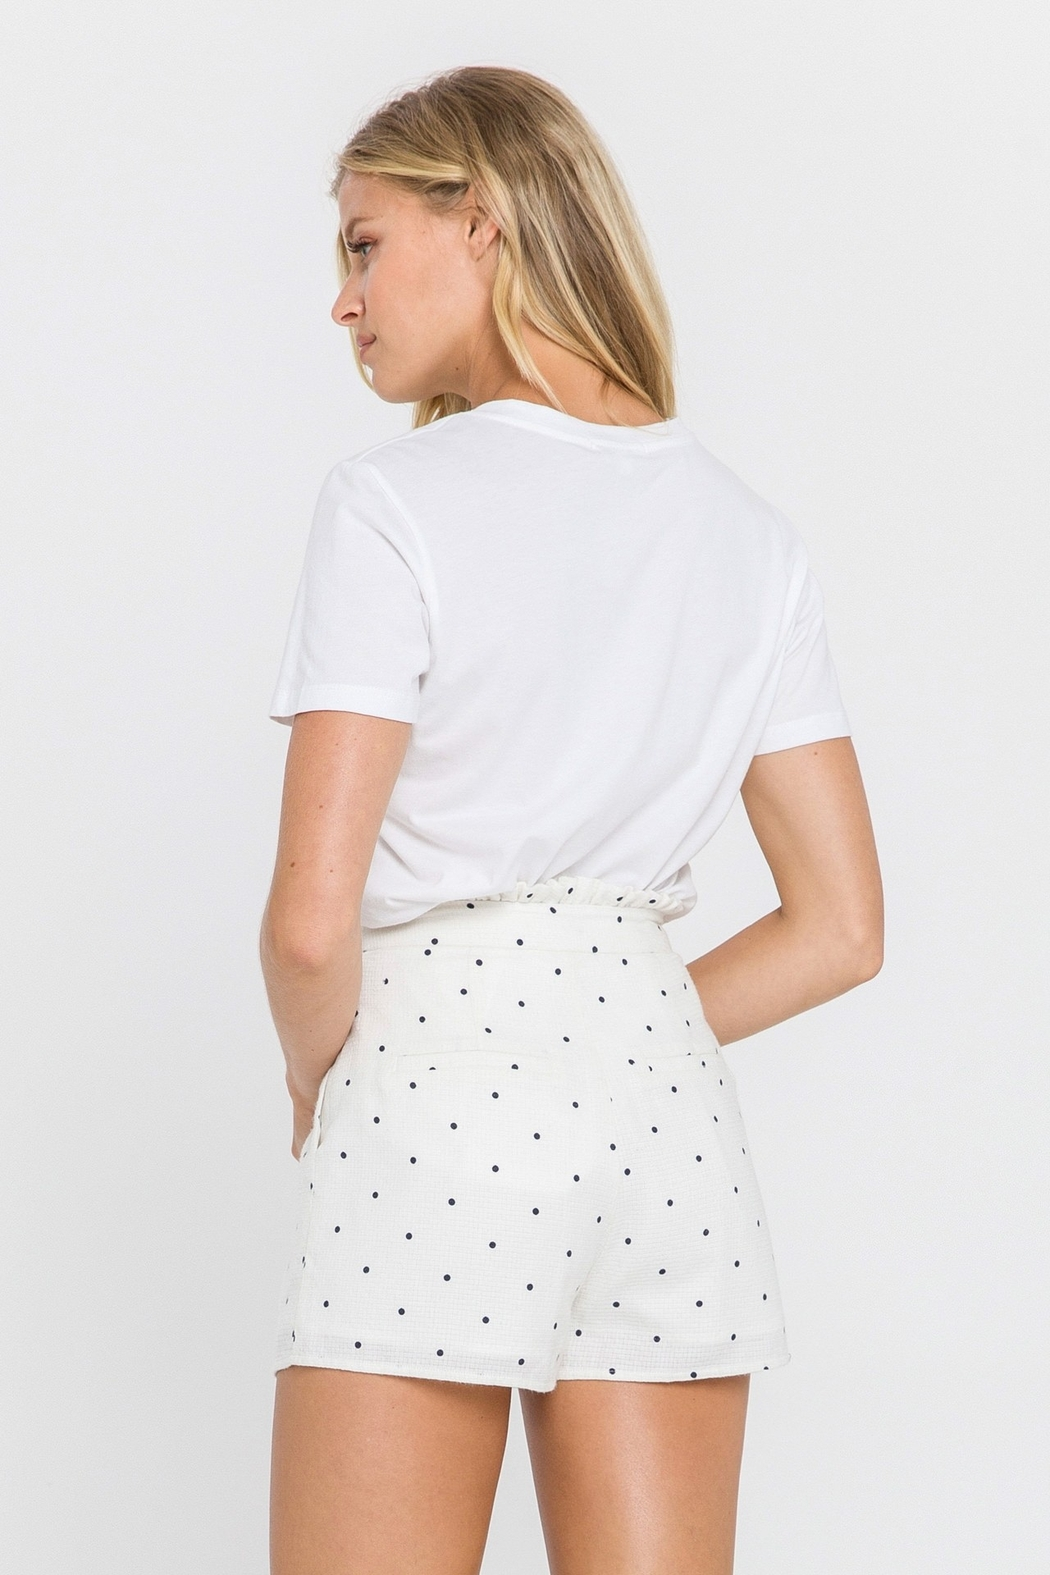 FREE THE ROSES Polka Dot Pleated Shorts - Side Cropped Image